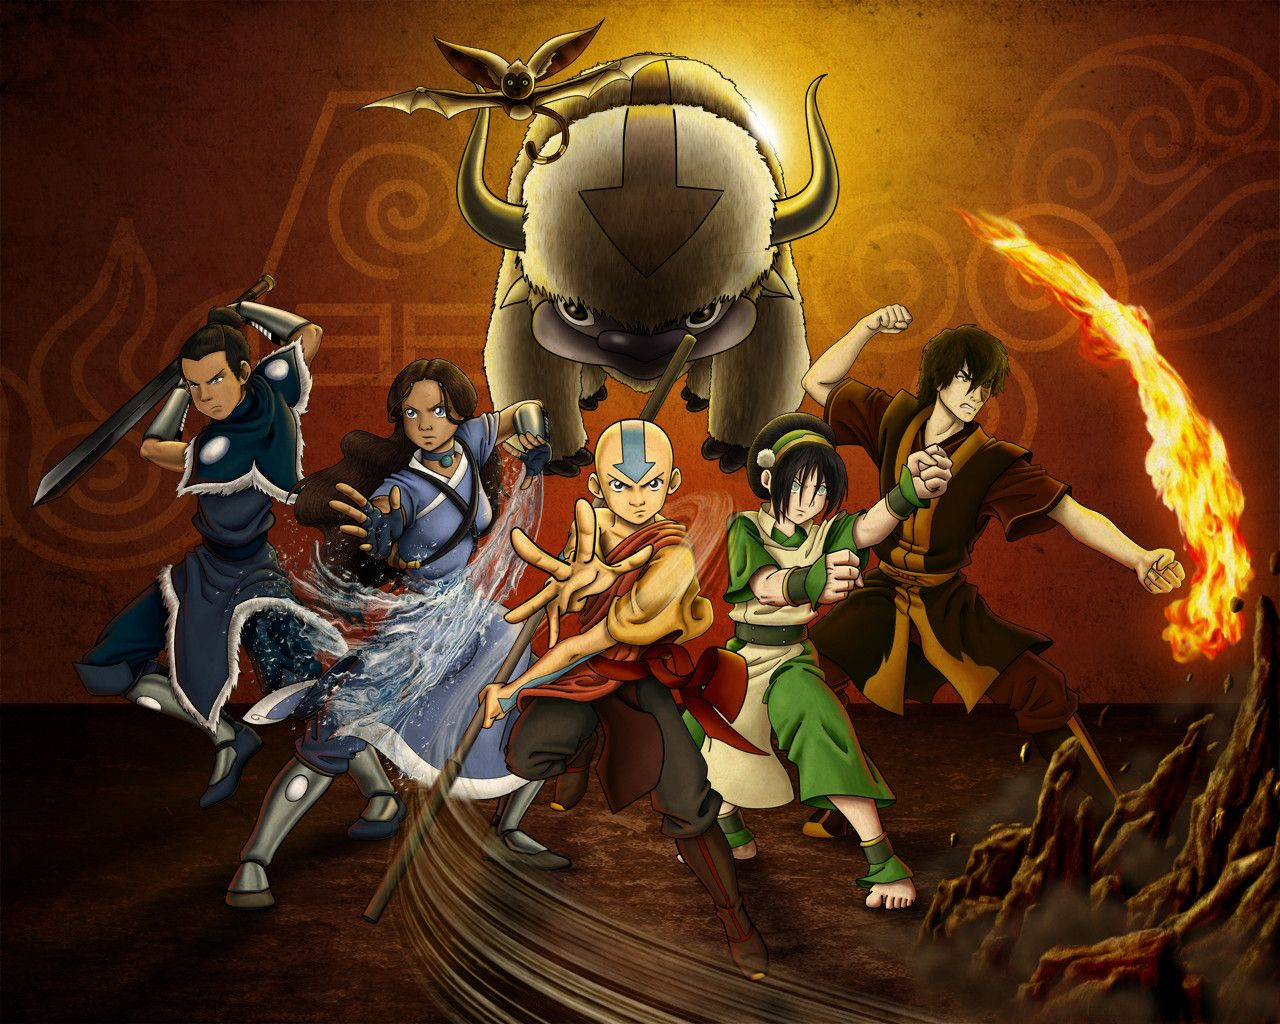 Avatar The Last Airbender Backgrounds The Last Airbender Characters Avatar Aang The Last Airbender